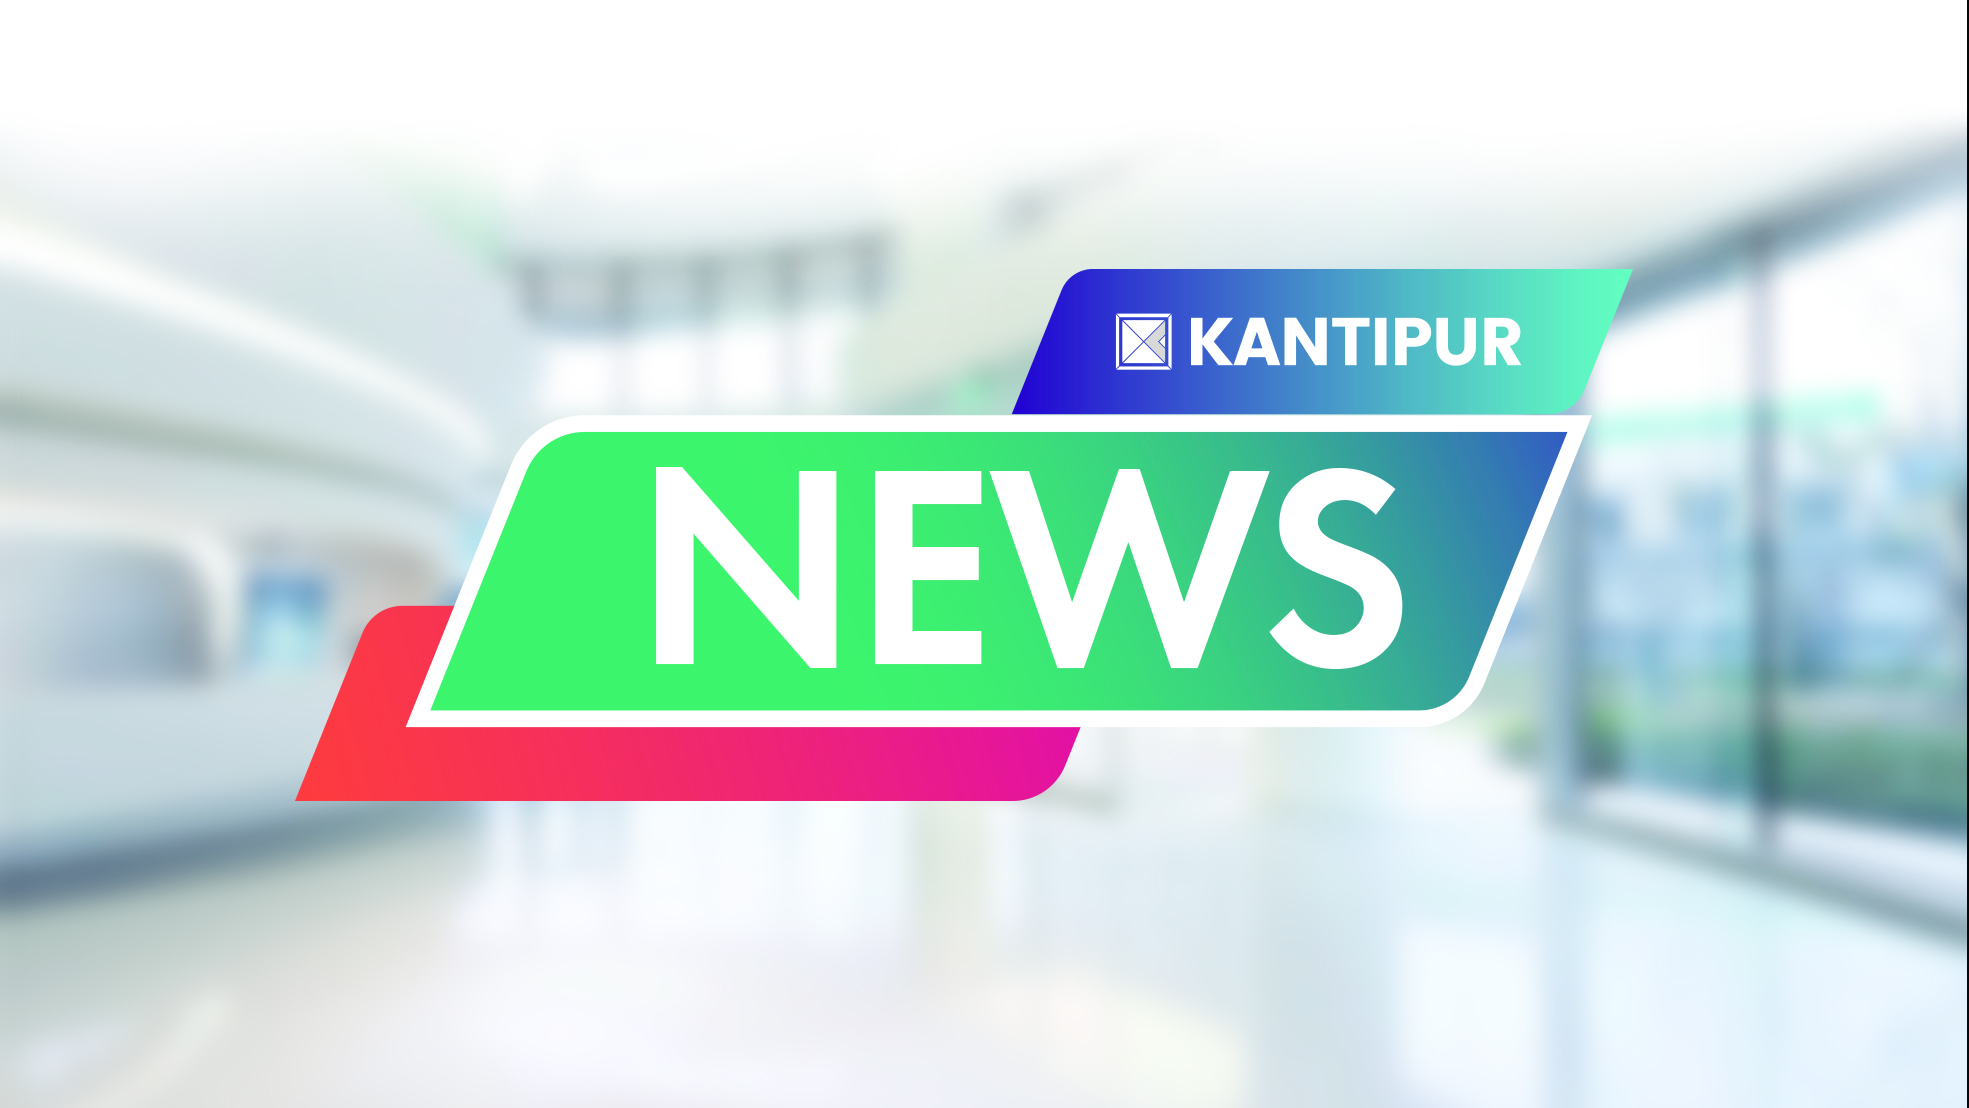 Kantipur News | Kantipur TV HD